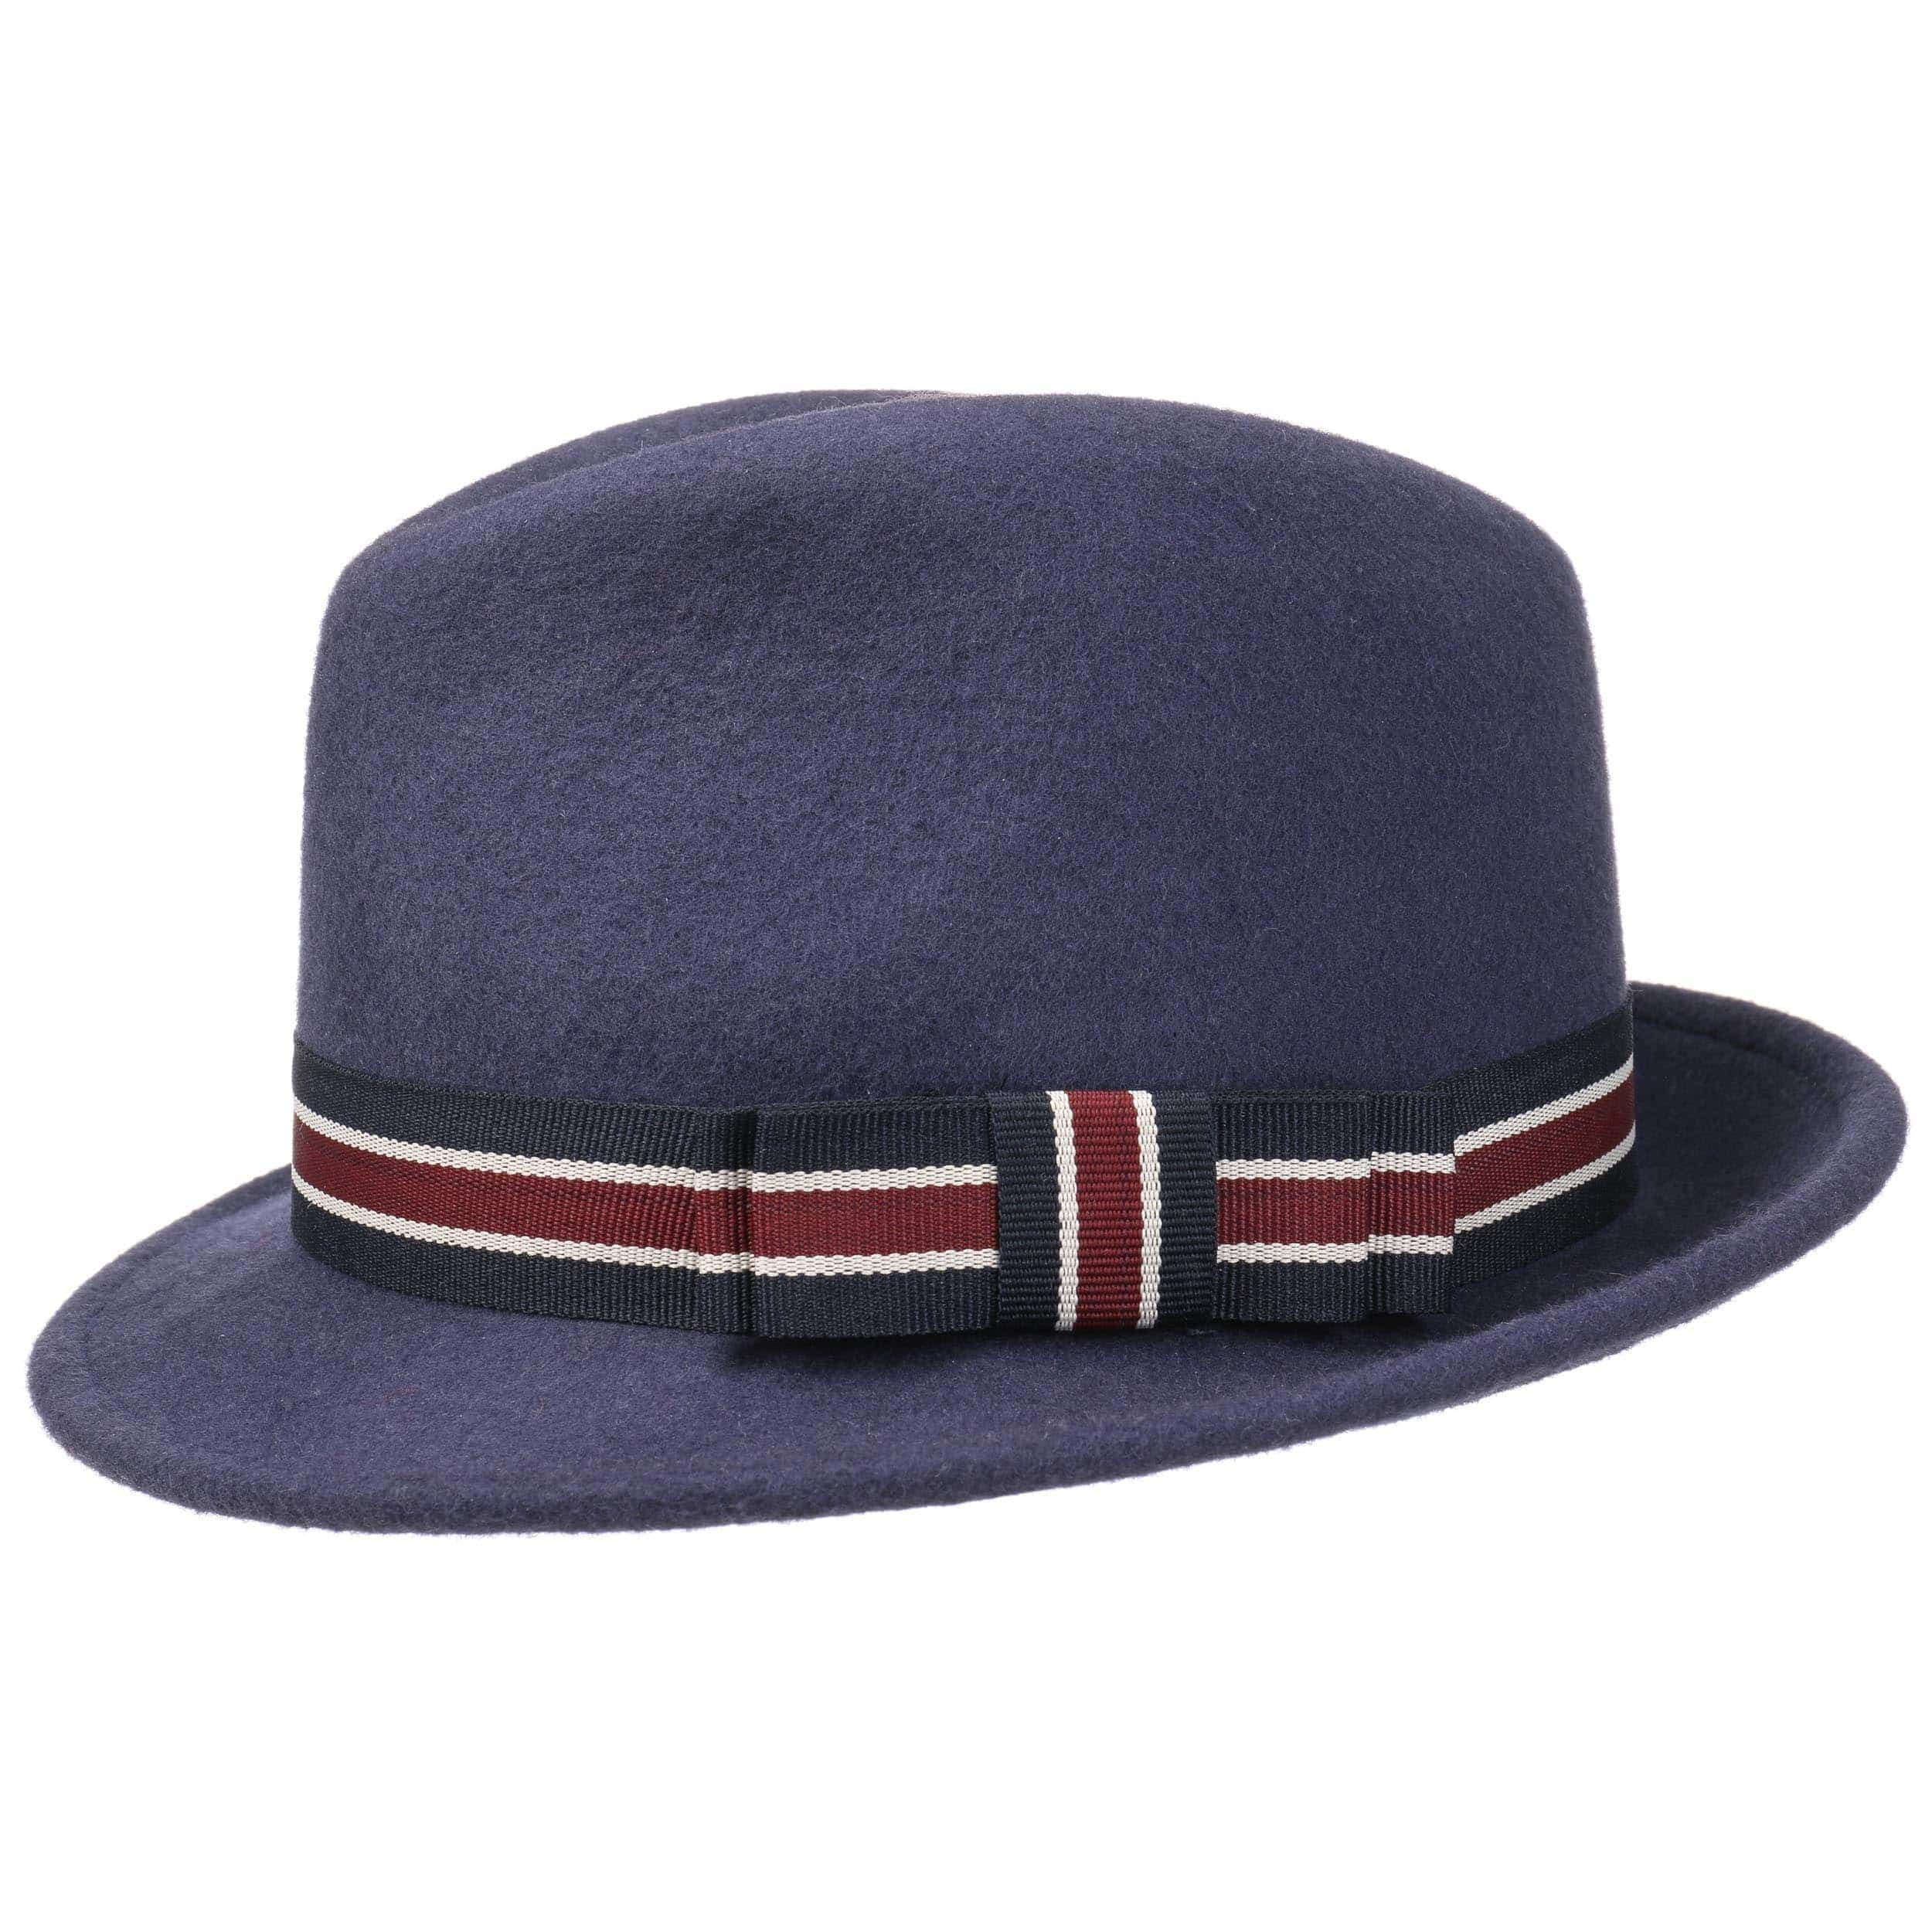 Men's Hats - Featured Styles